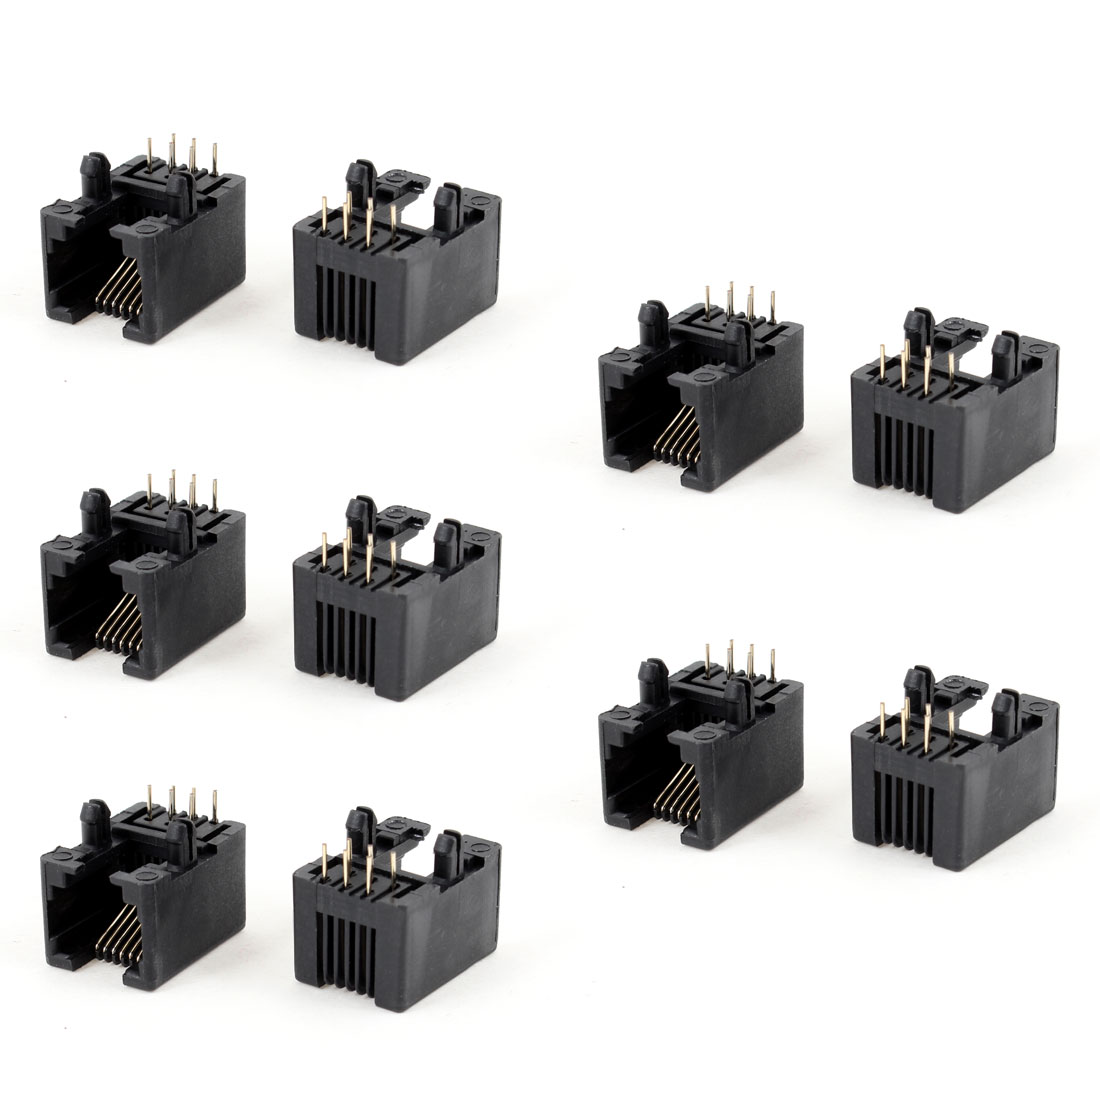 10pcs Right Angle RJ12 6P6C 6 Pin Network LAN Ethernet PCB Jacks Connector Black